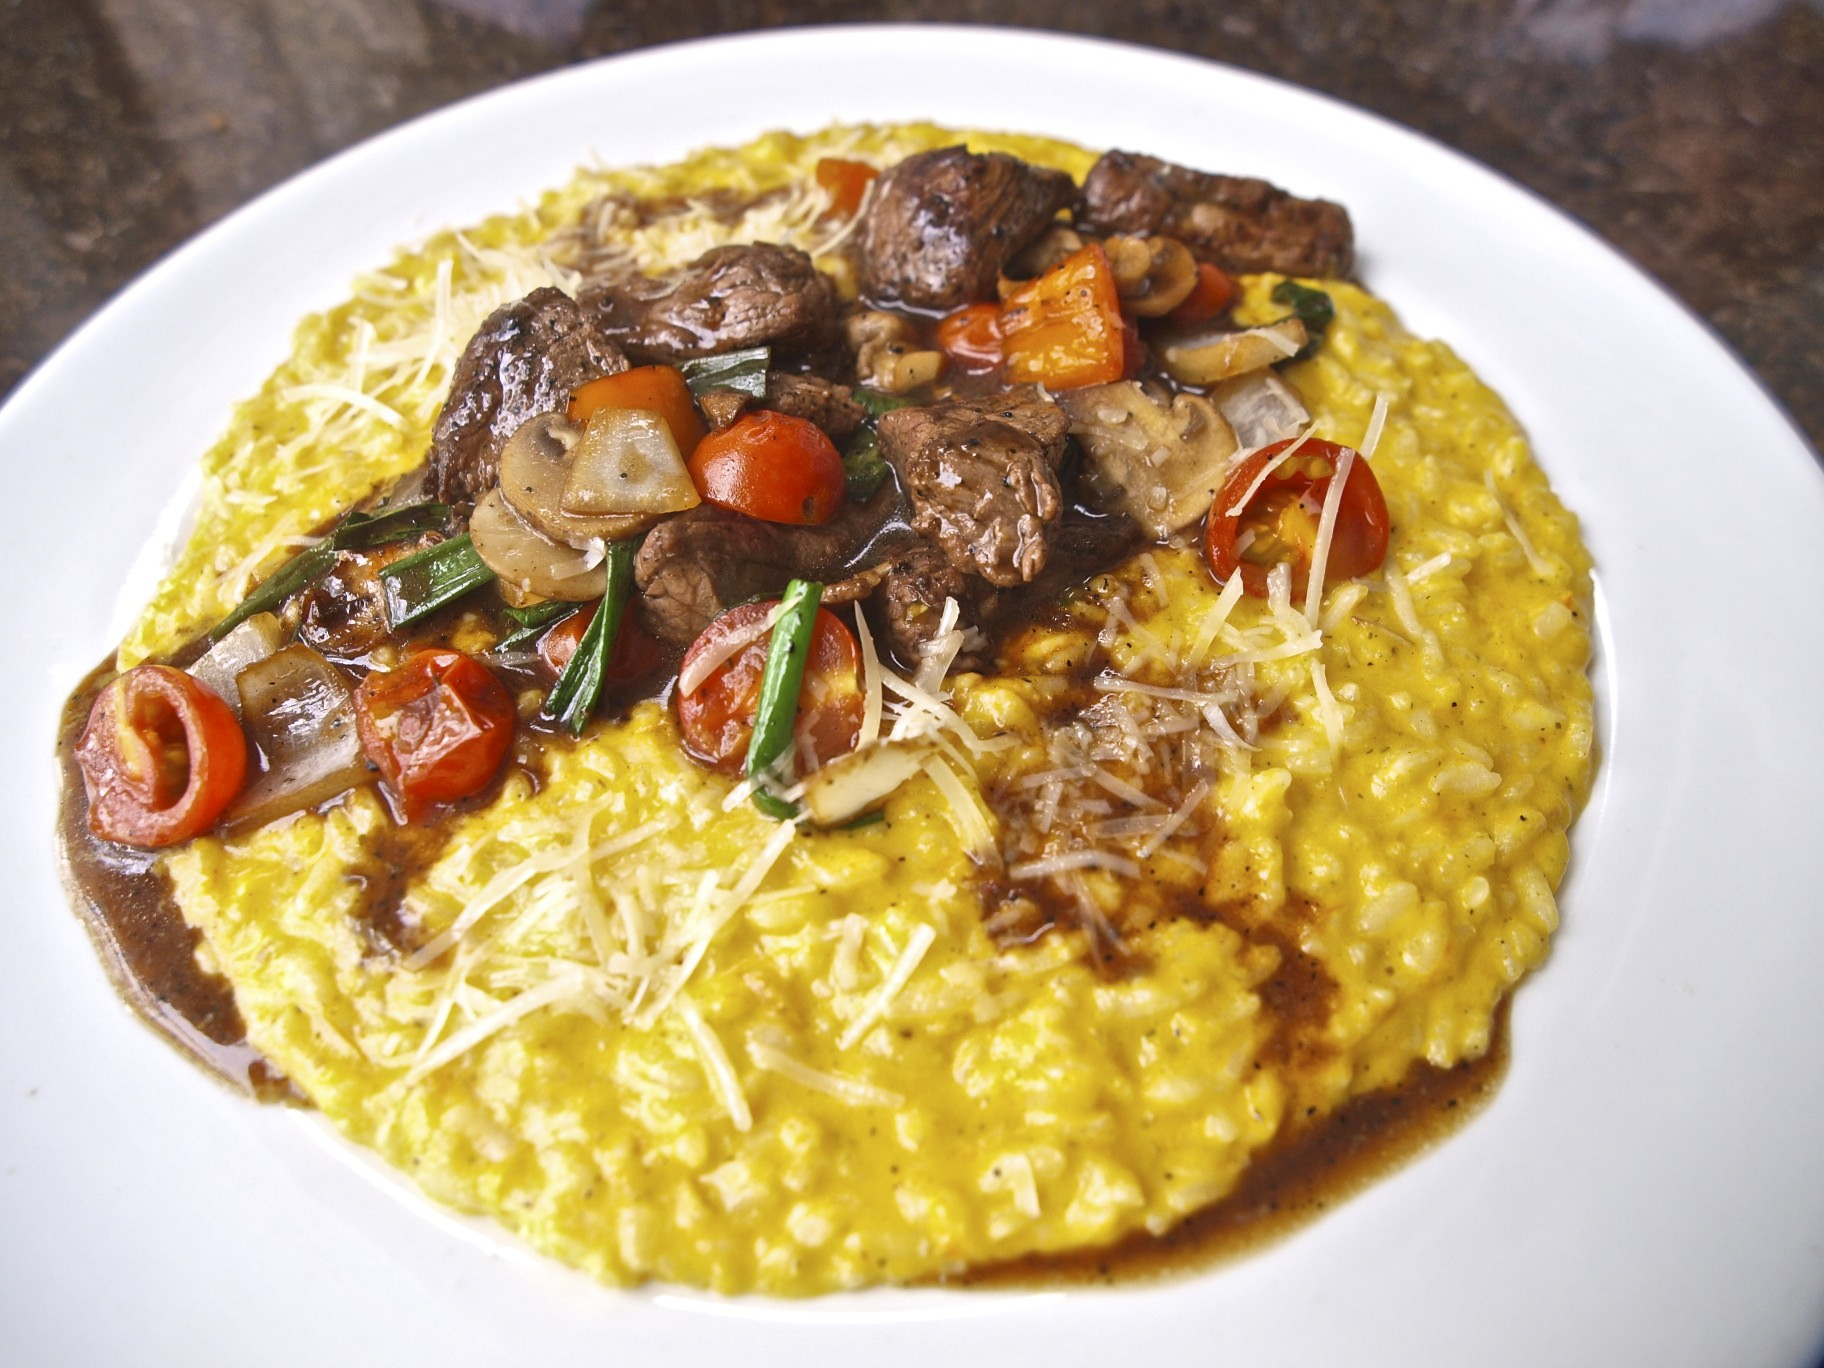 Lartisan Hearty Peruvian Comfort Food For The Cloudy Lima Winter